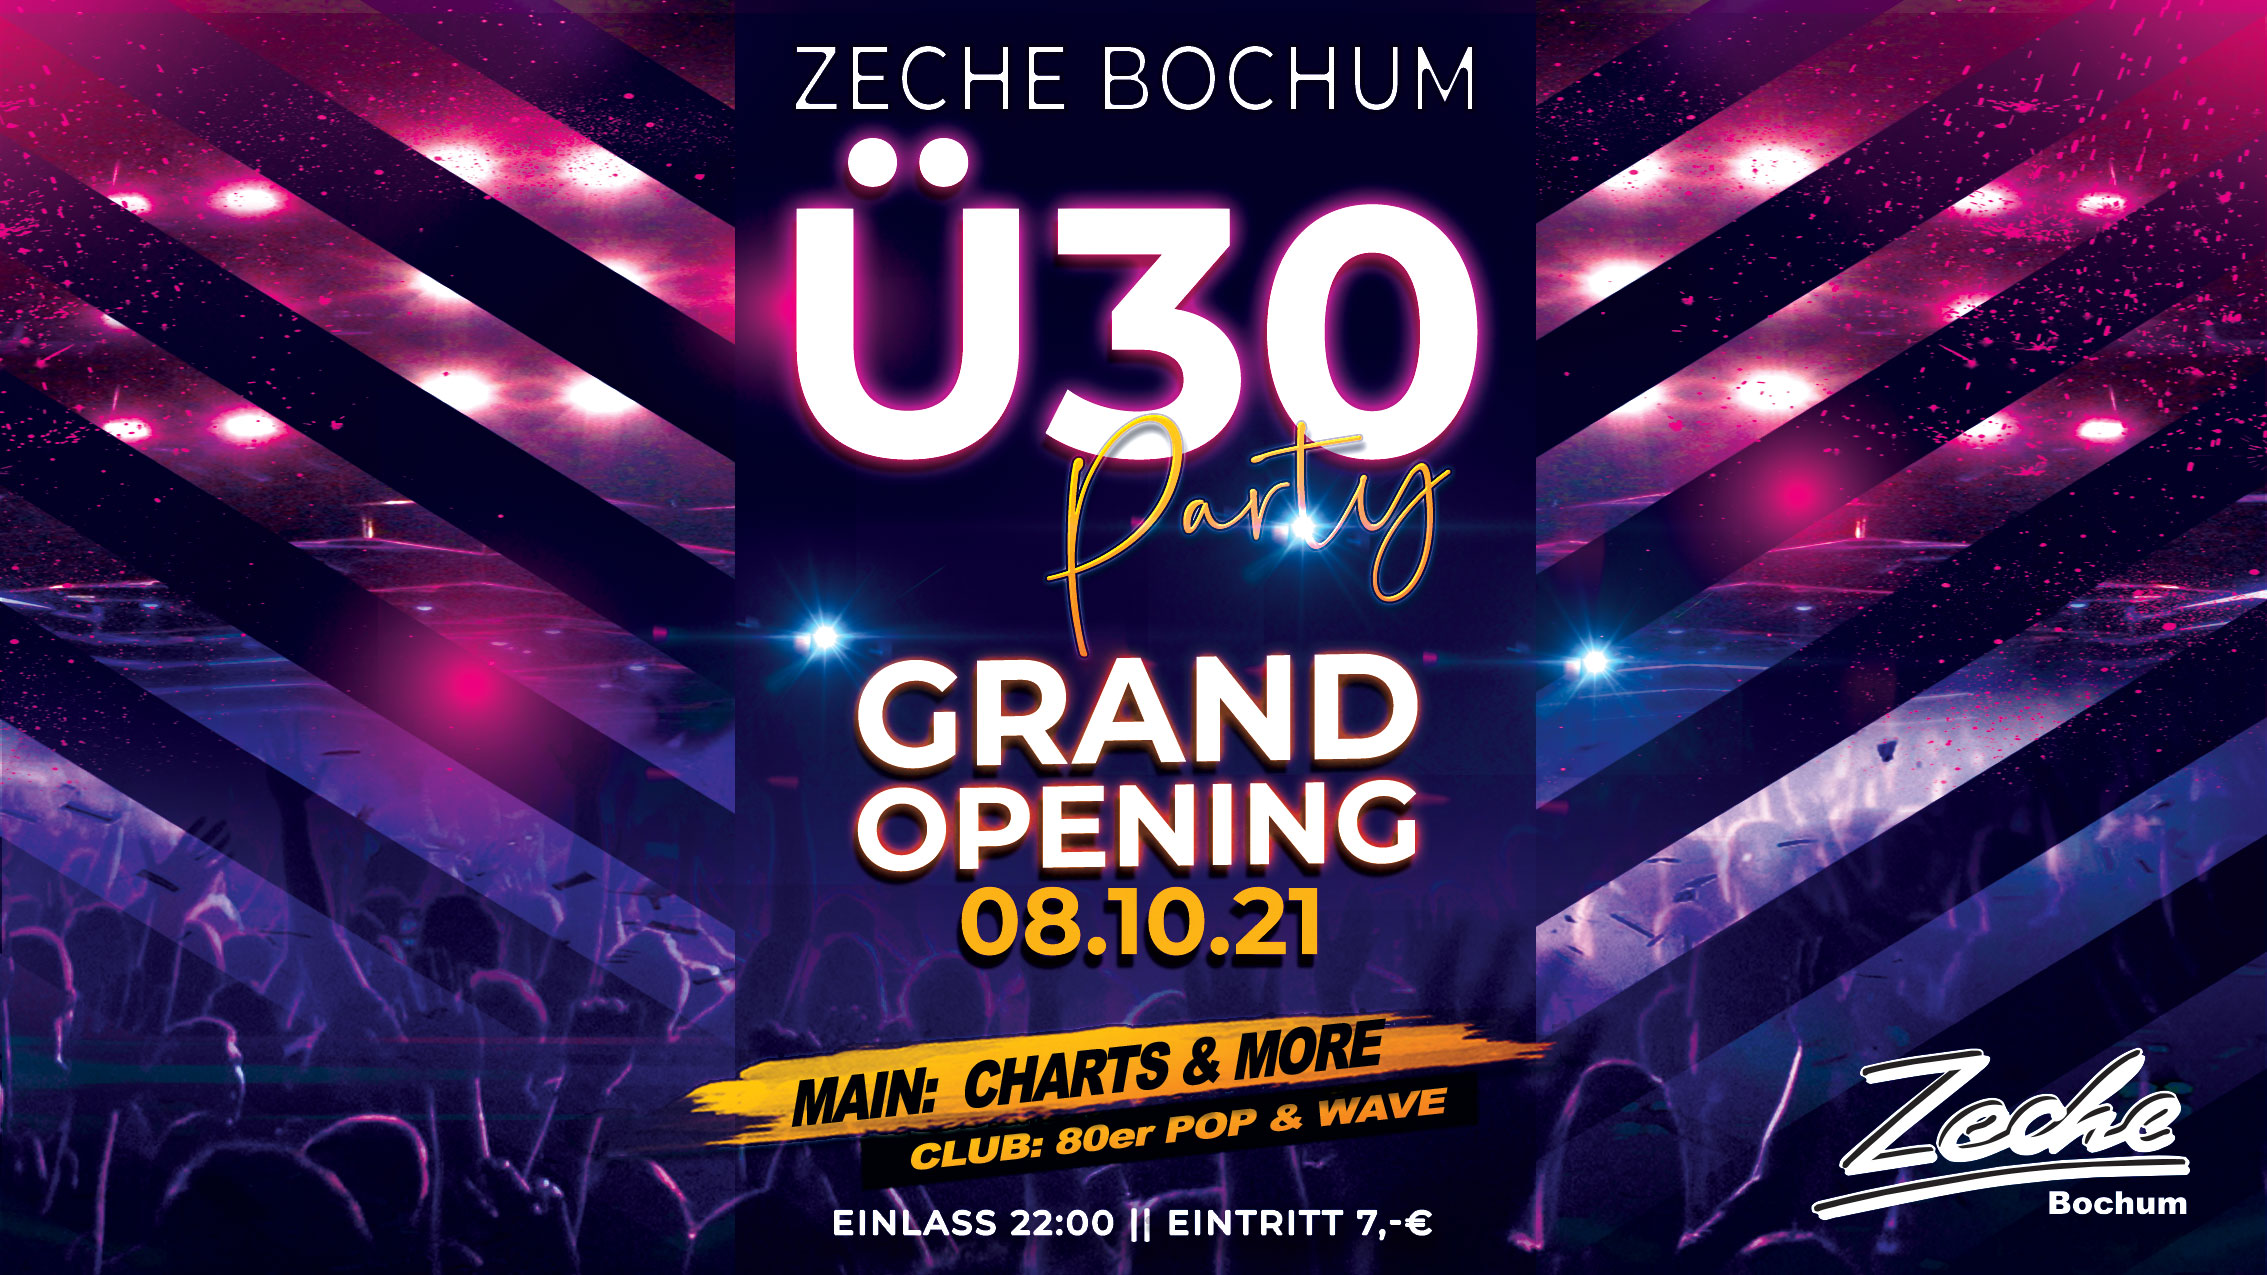 GRAND OPENING - Ü30 PARTY